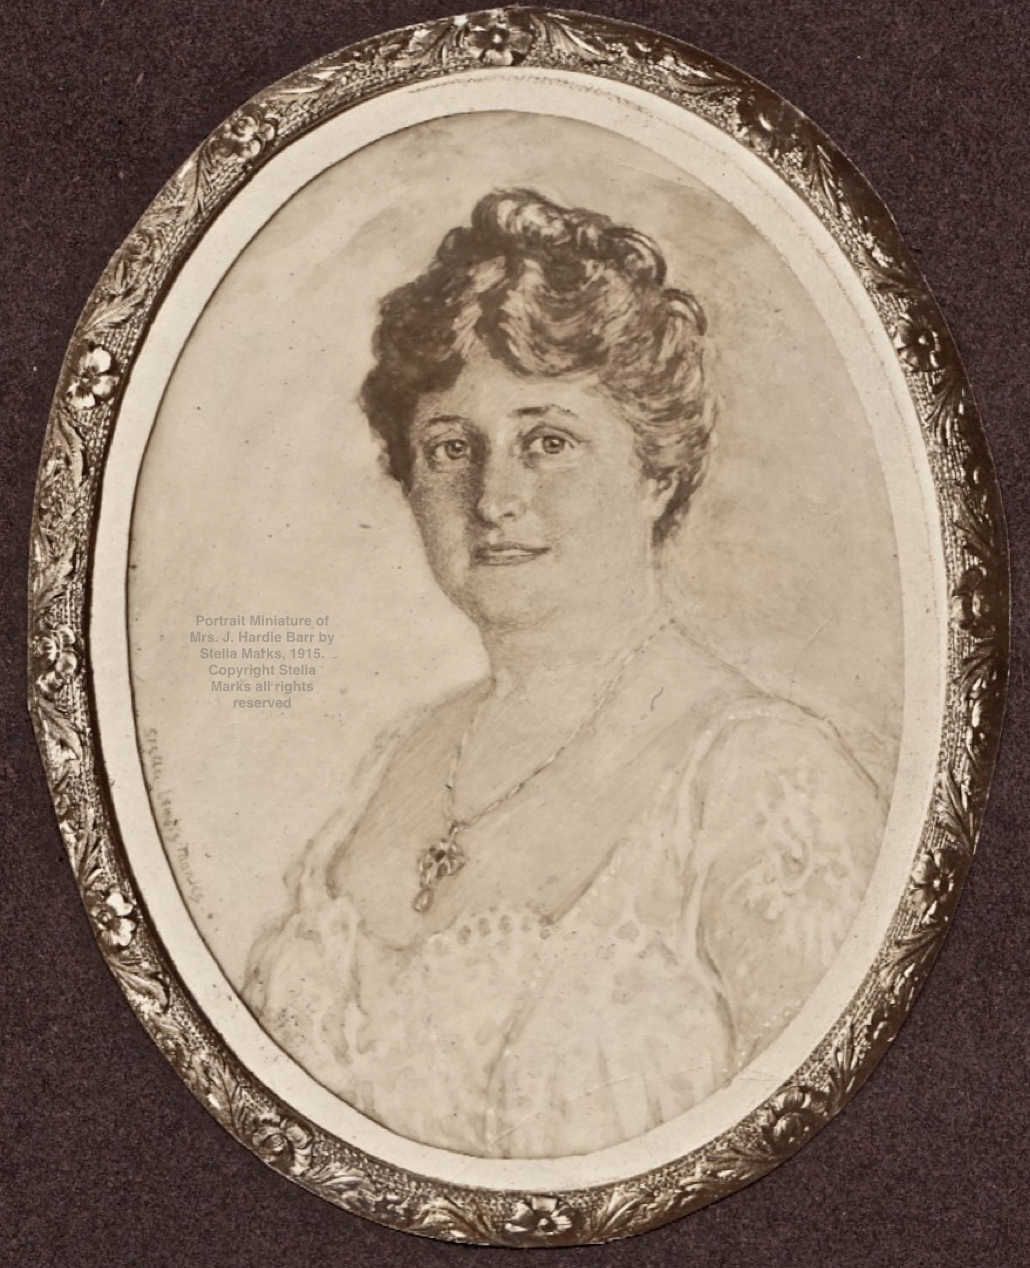 After A Portrait Miniature of Mrs. J. Hardie Barr by Stella Marks, 1915. Copyright Stella Marks' Estate all rights reserved